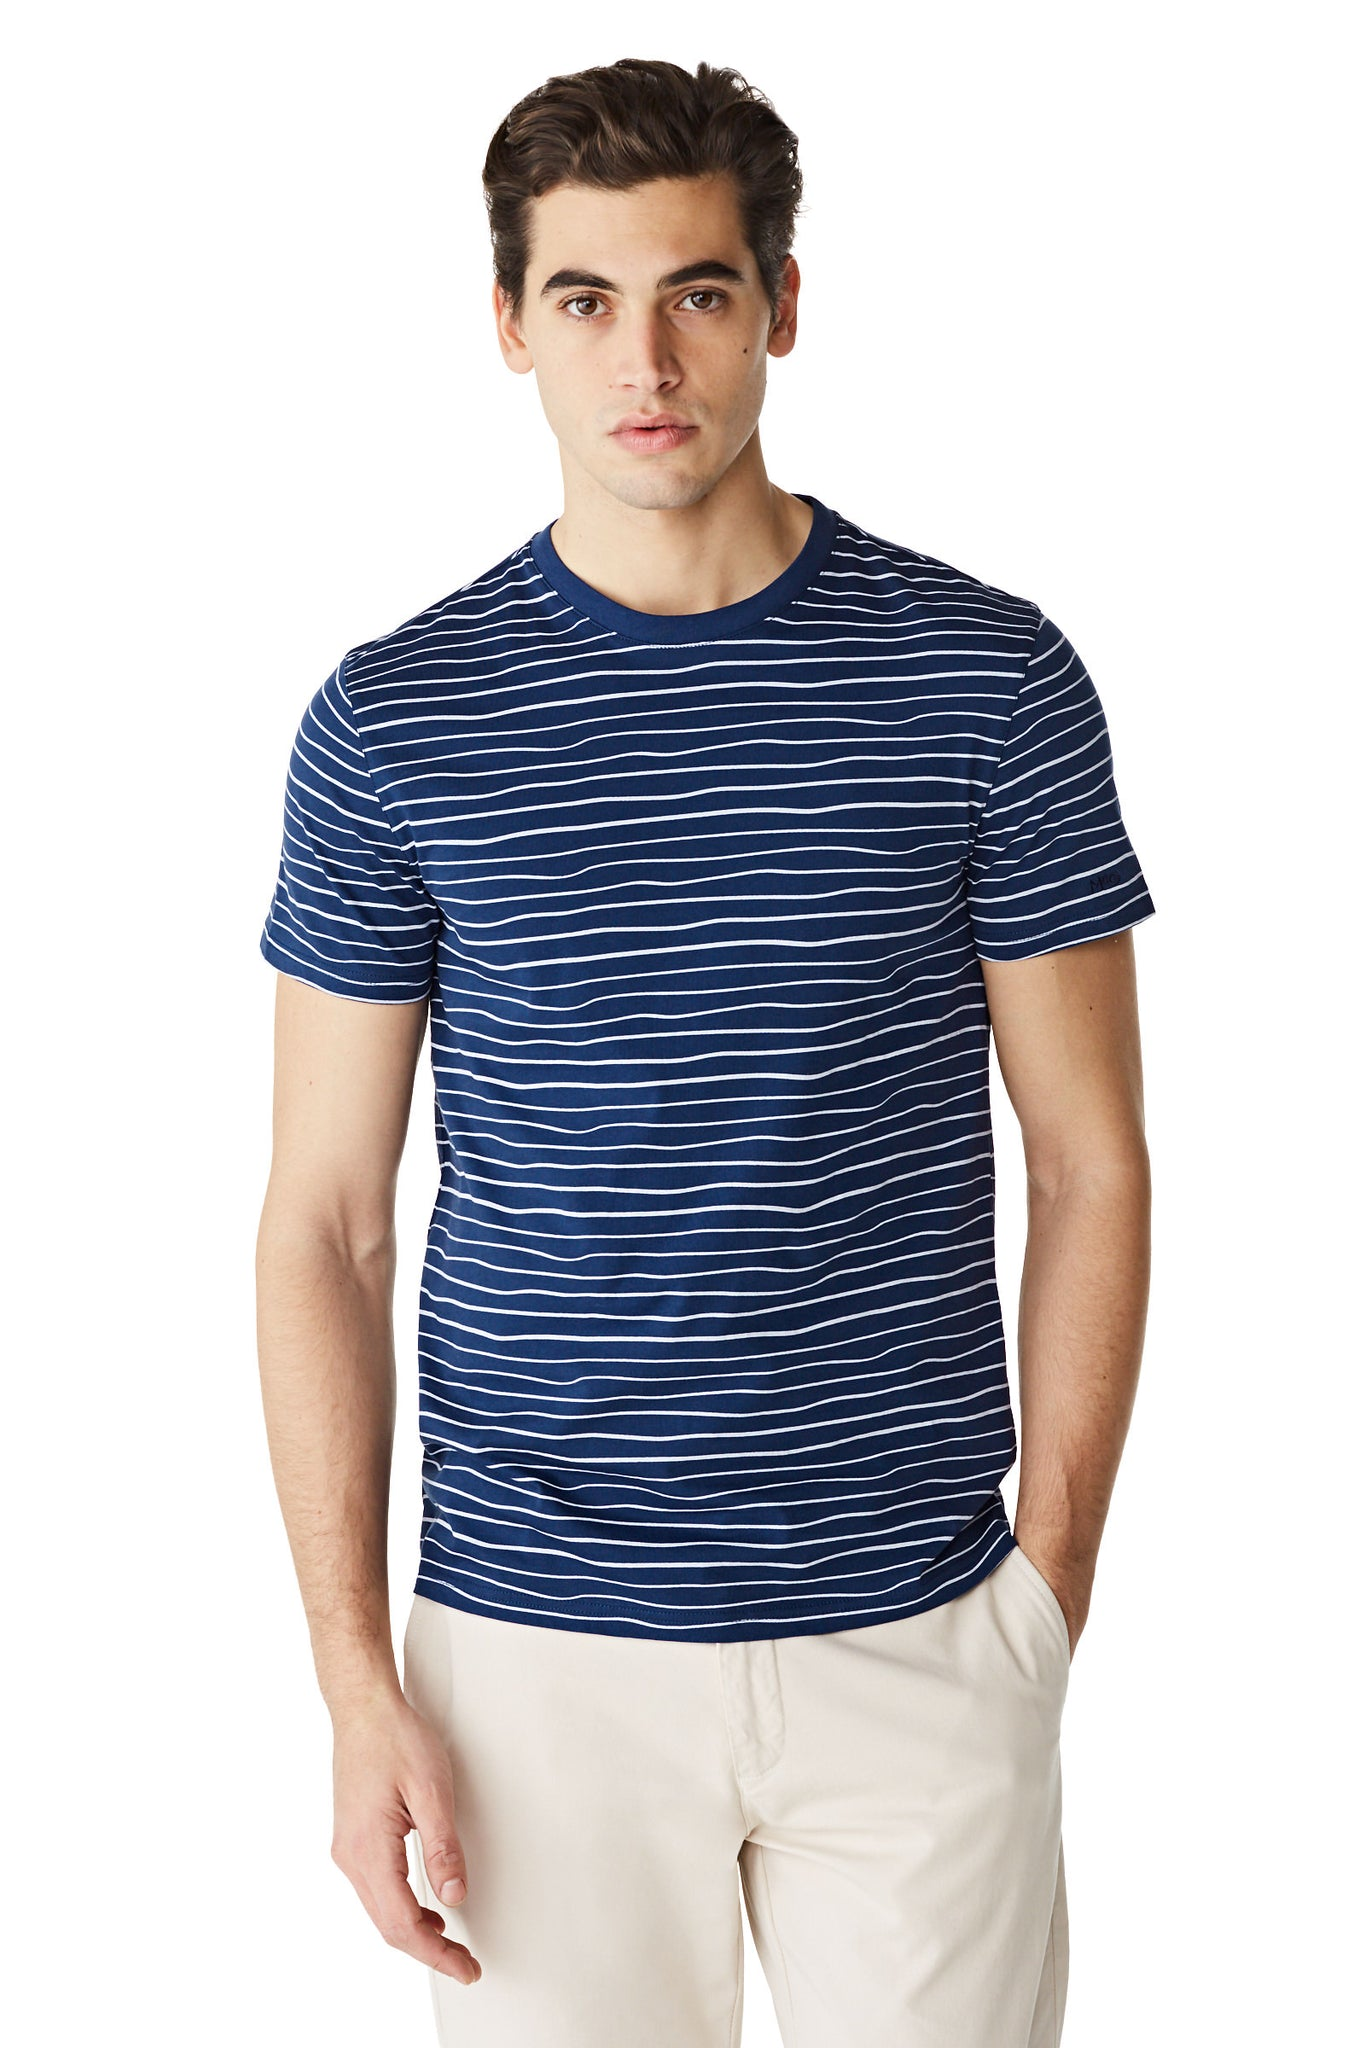 McG striped t-shirt cotton